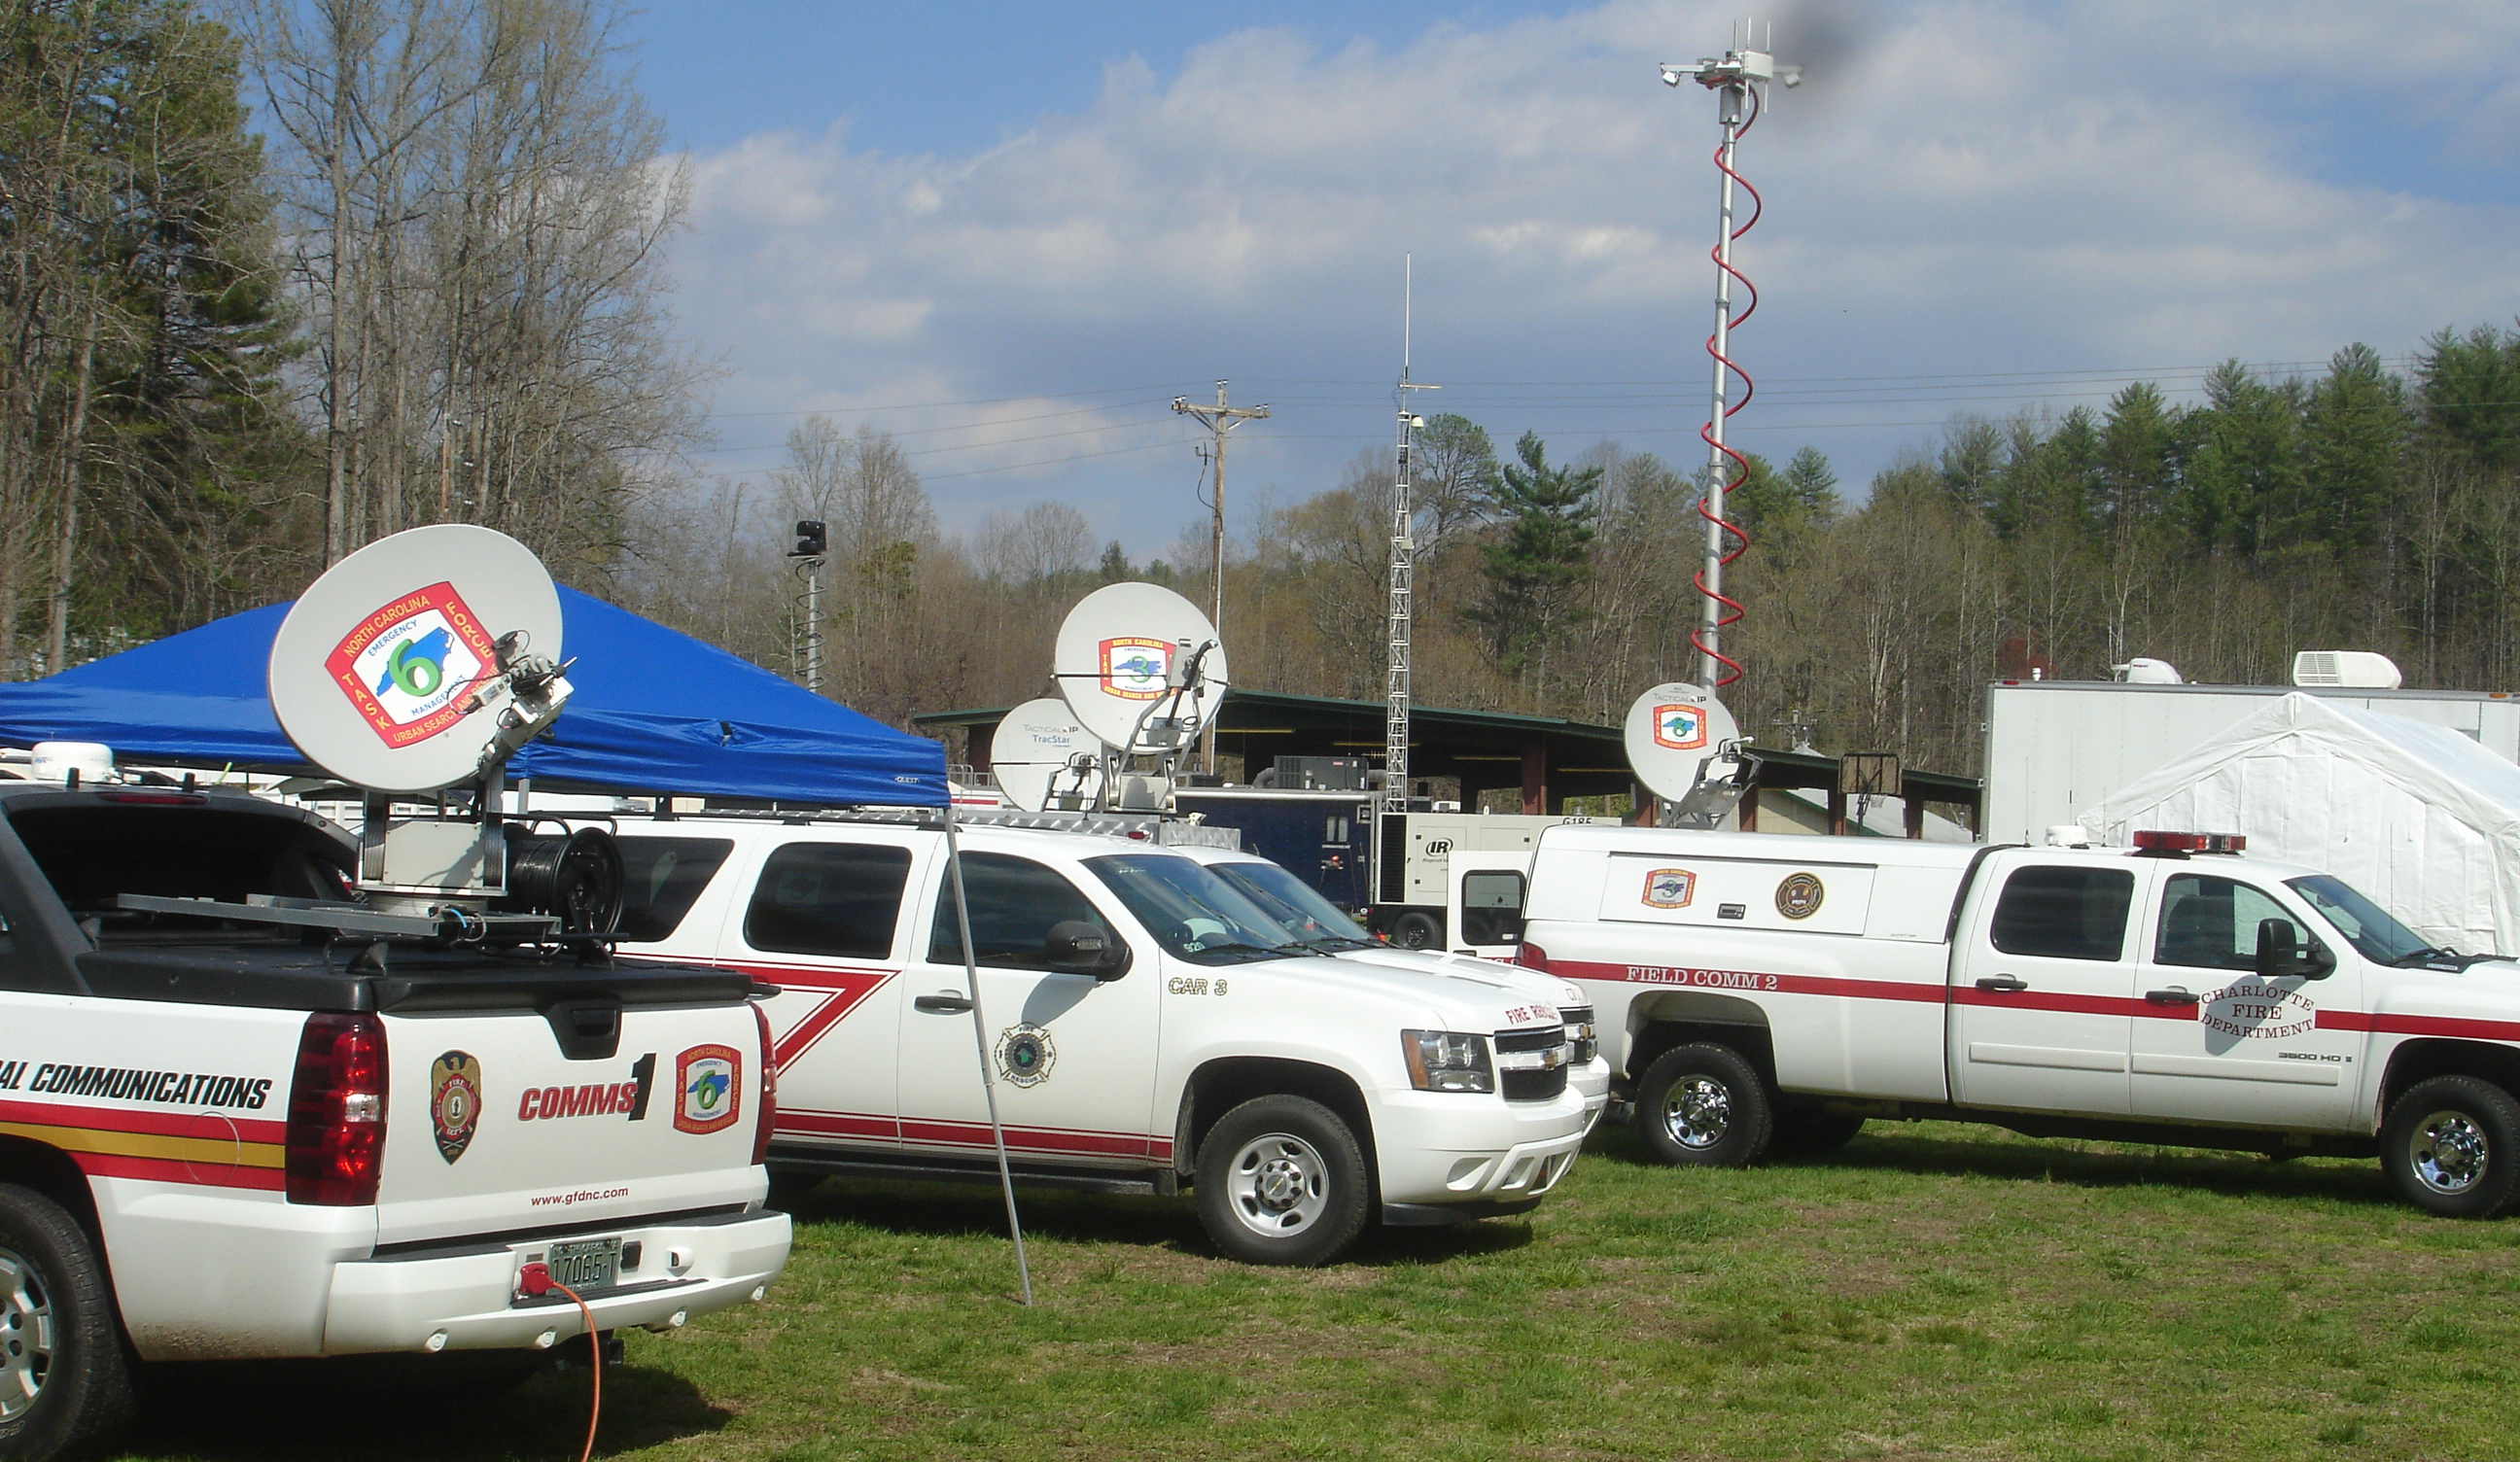 Emergency communications vehicles during an exercise